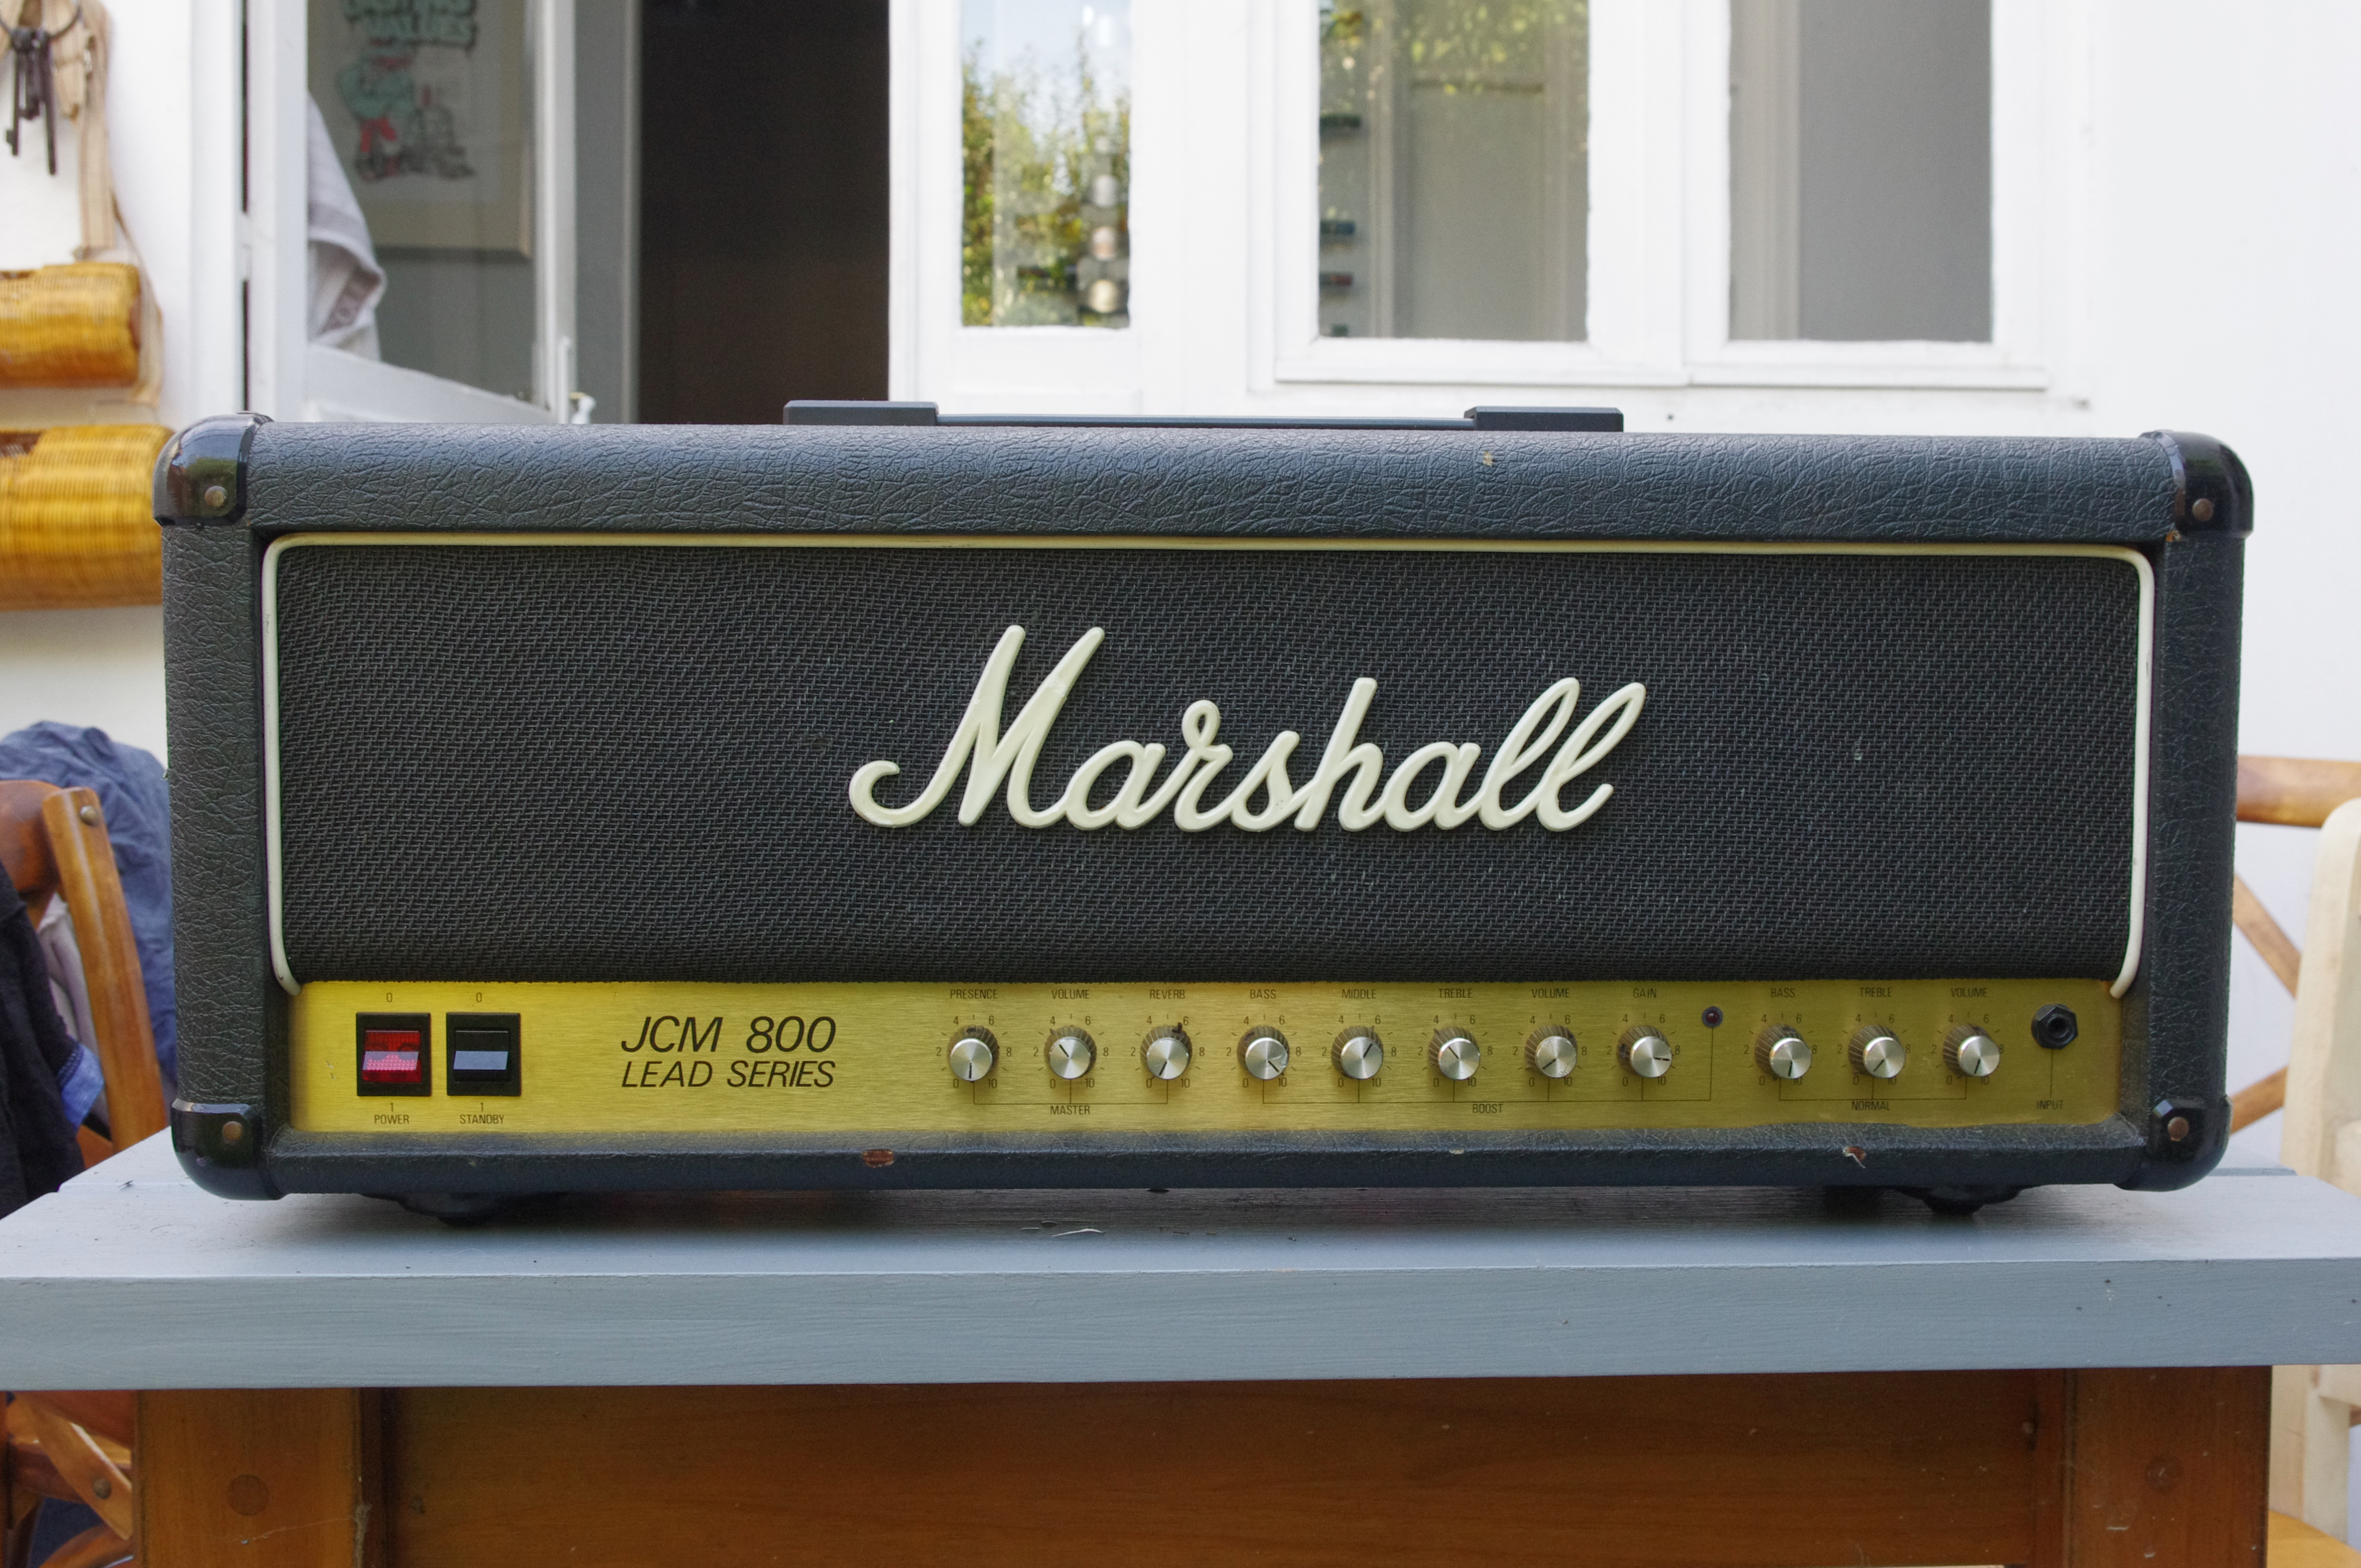 Dating a Marshall cab